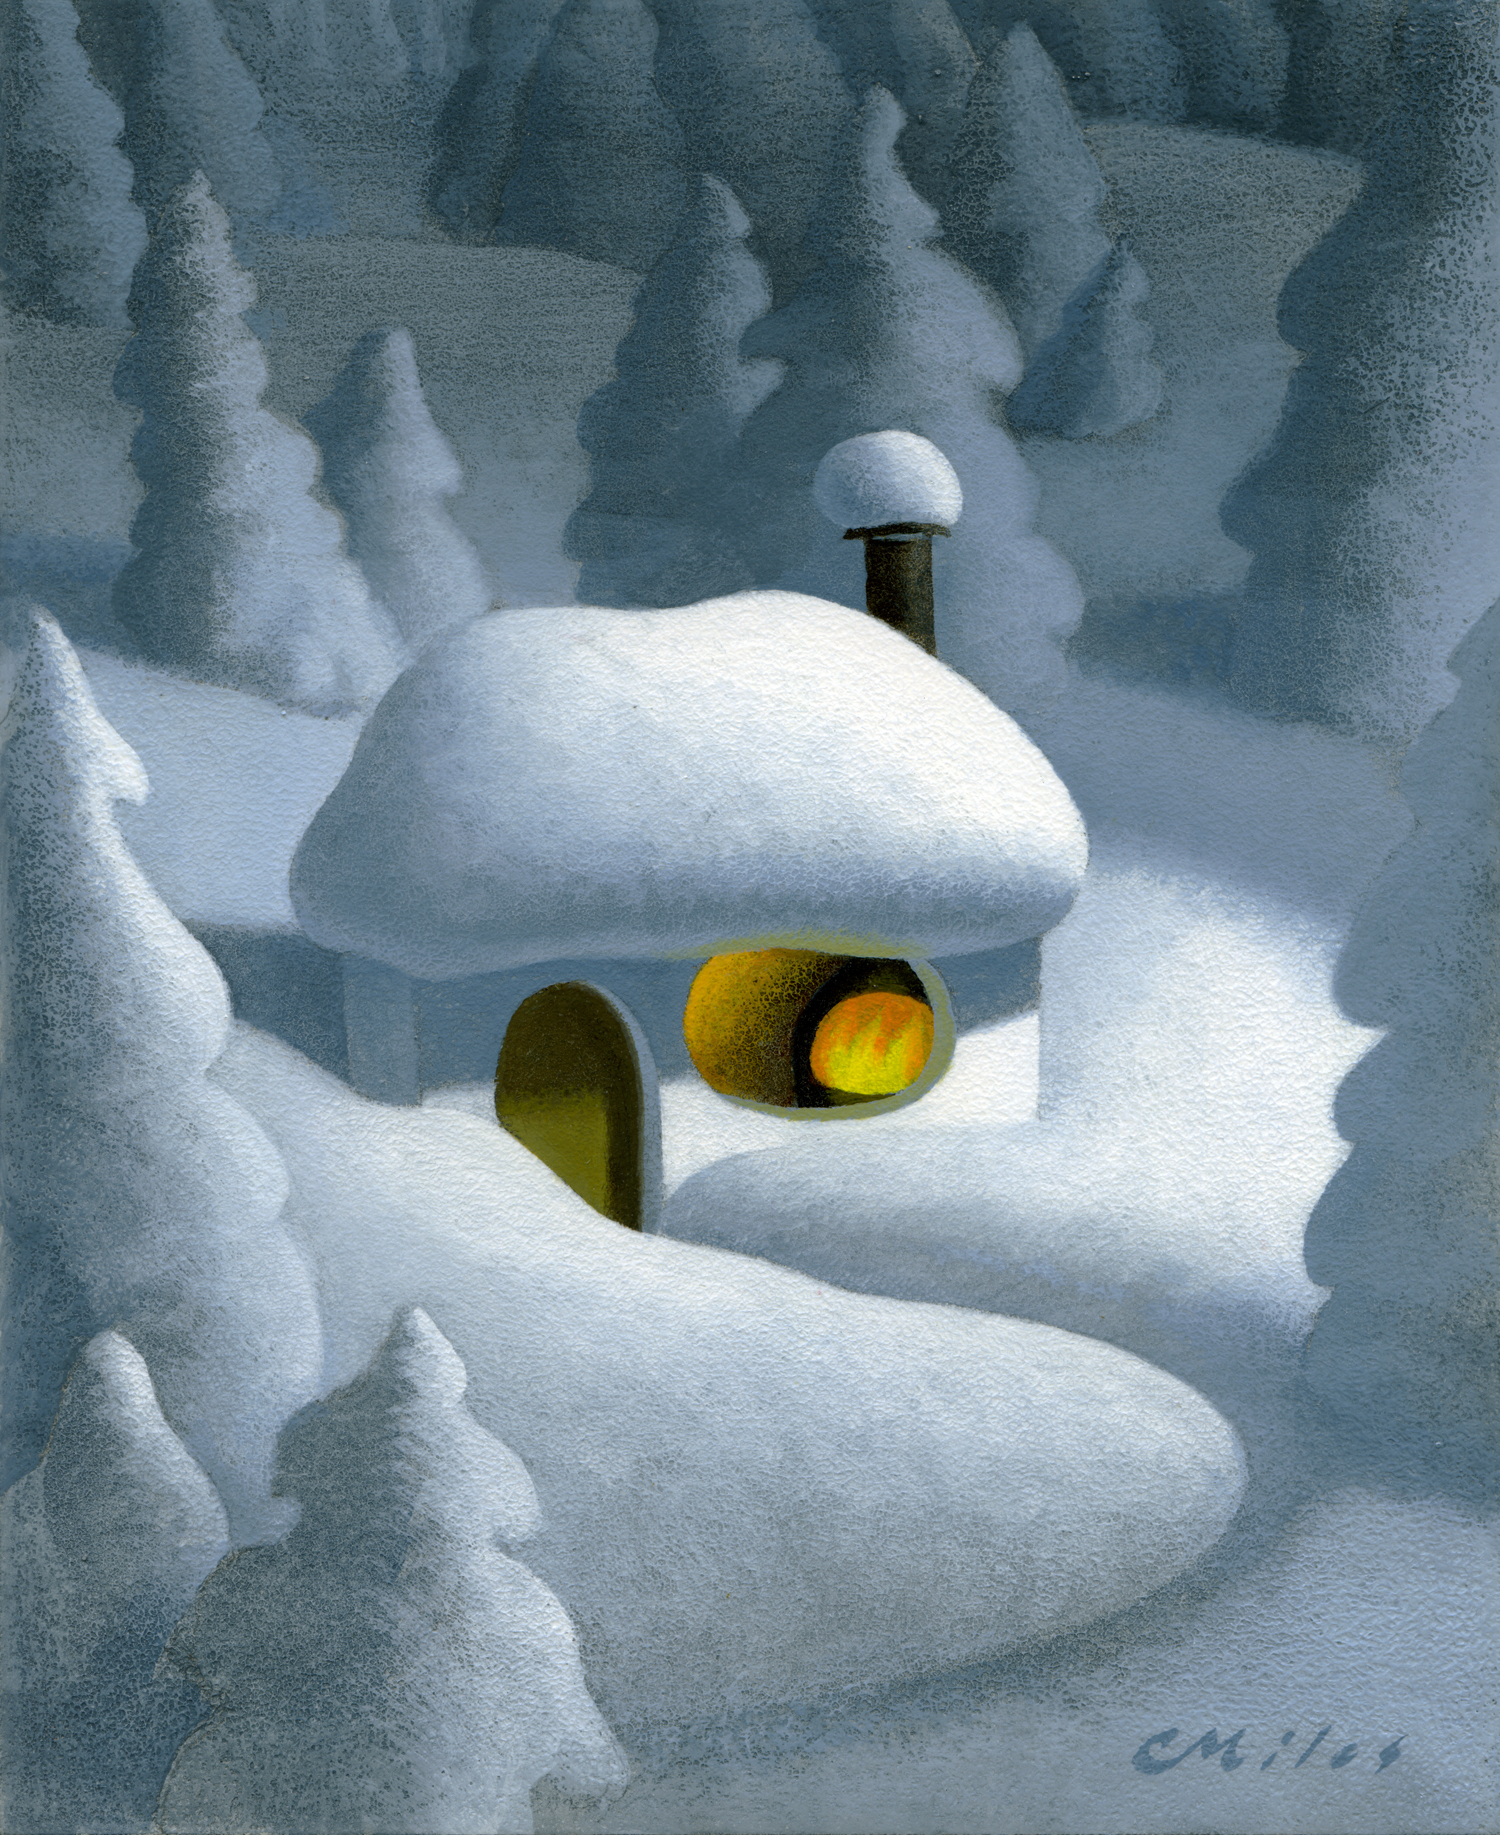 Swiss Cabin  •  $420.00  •  8 x 10 inches